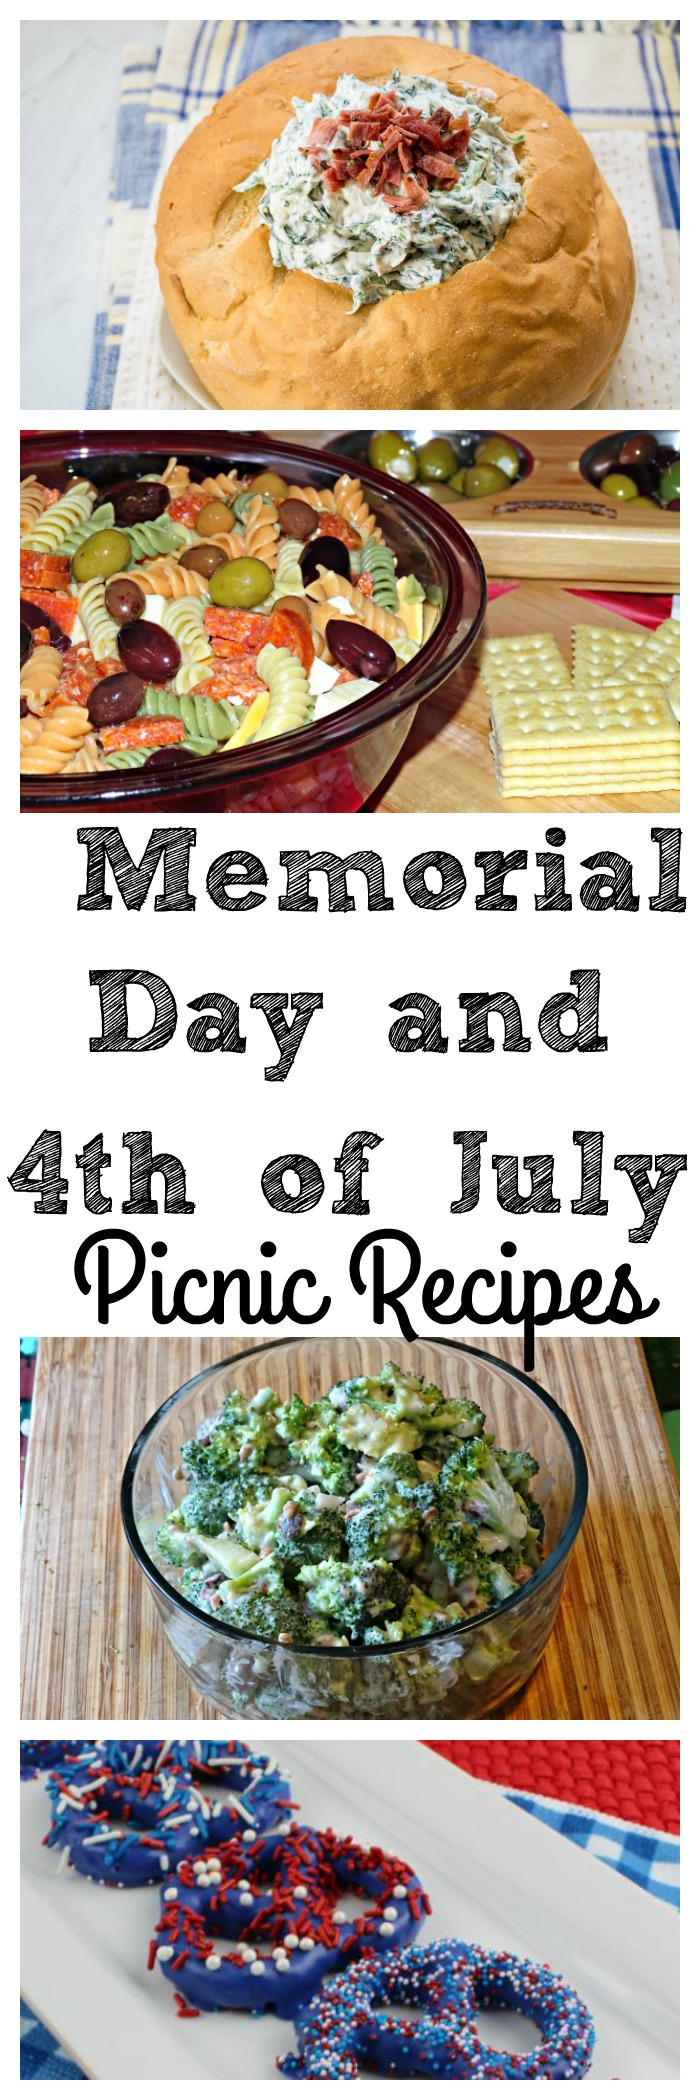 Are you looking for Picnic Recipes? These are some yummy recipes to try for Memorial Day, 4th of July or just any time you are headed to a get together.